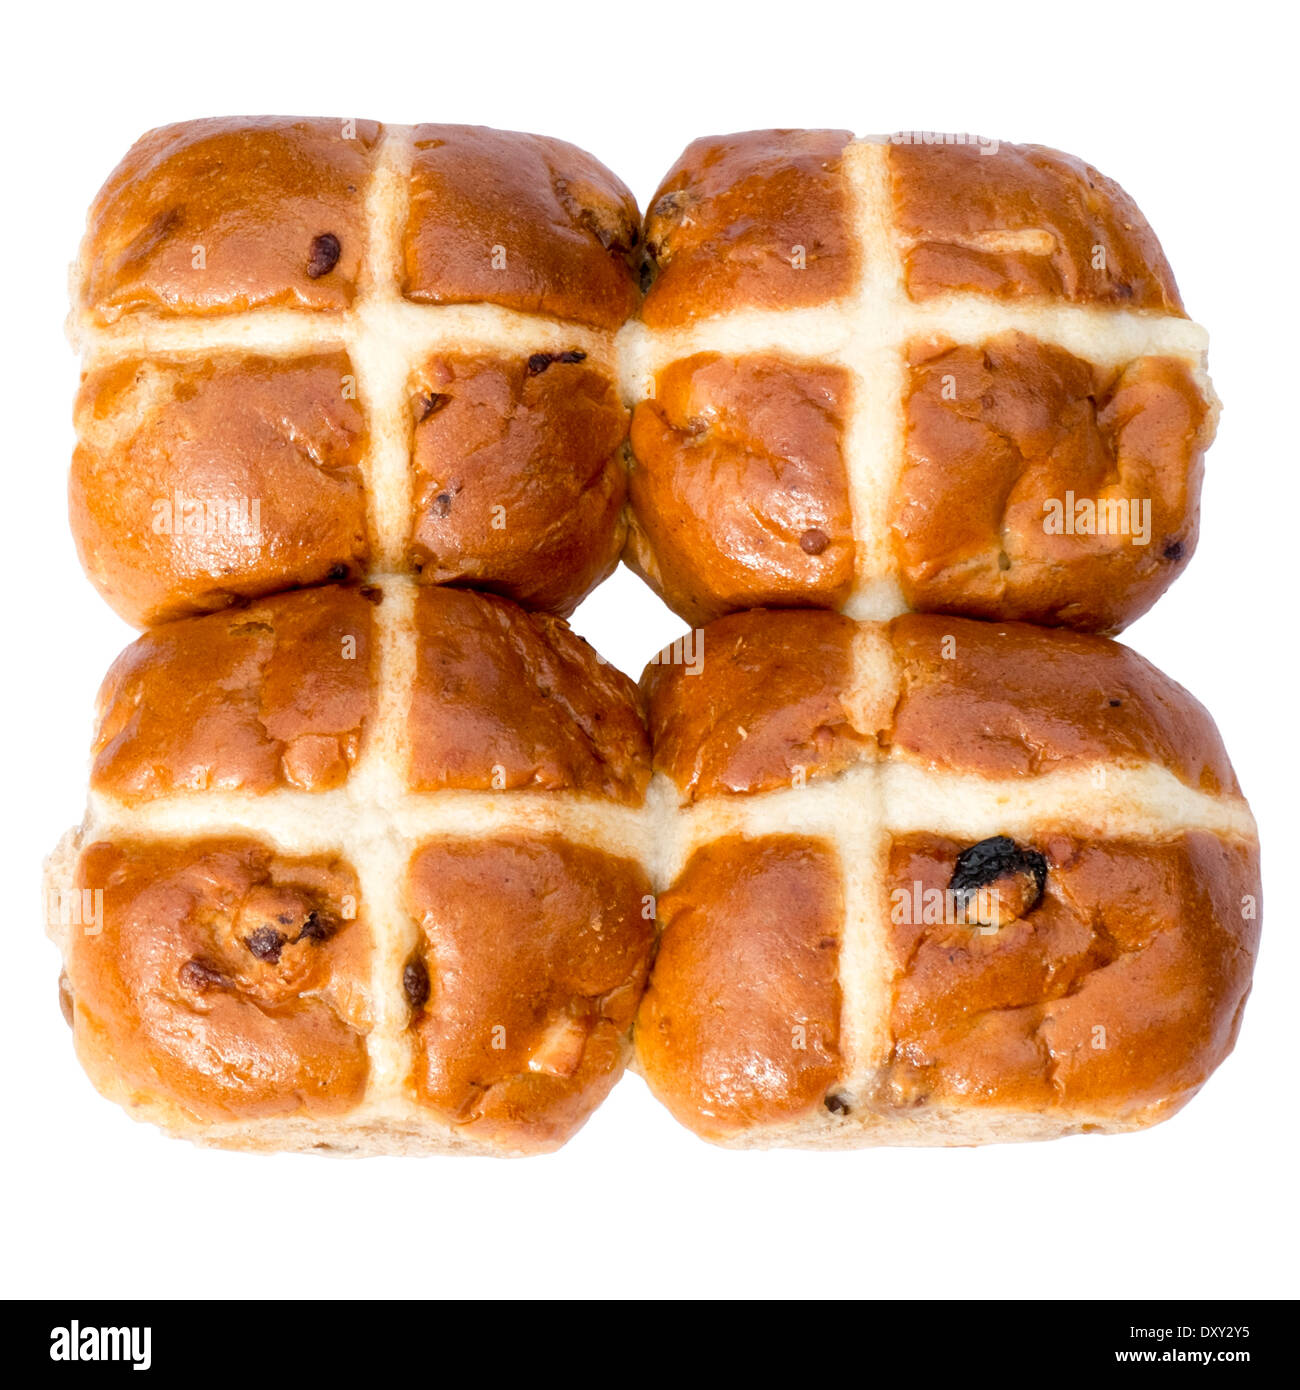 Hot cross buns cut out against a white background. - Stock Image